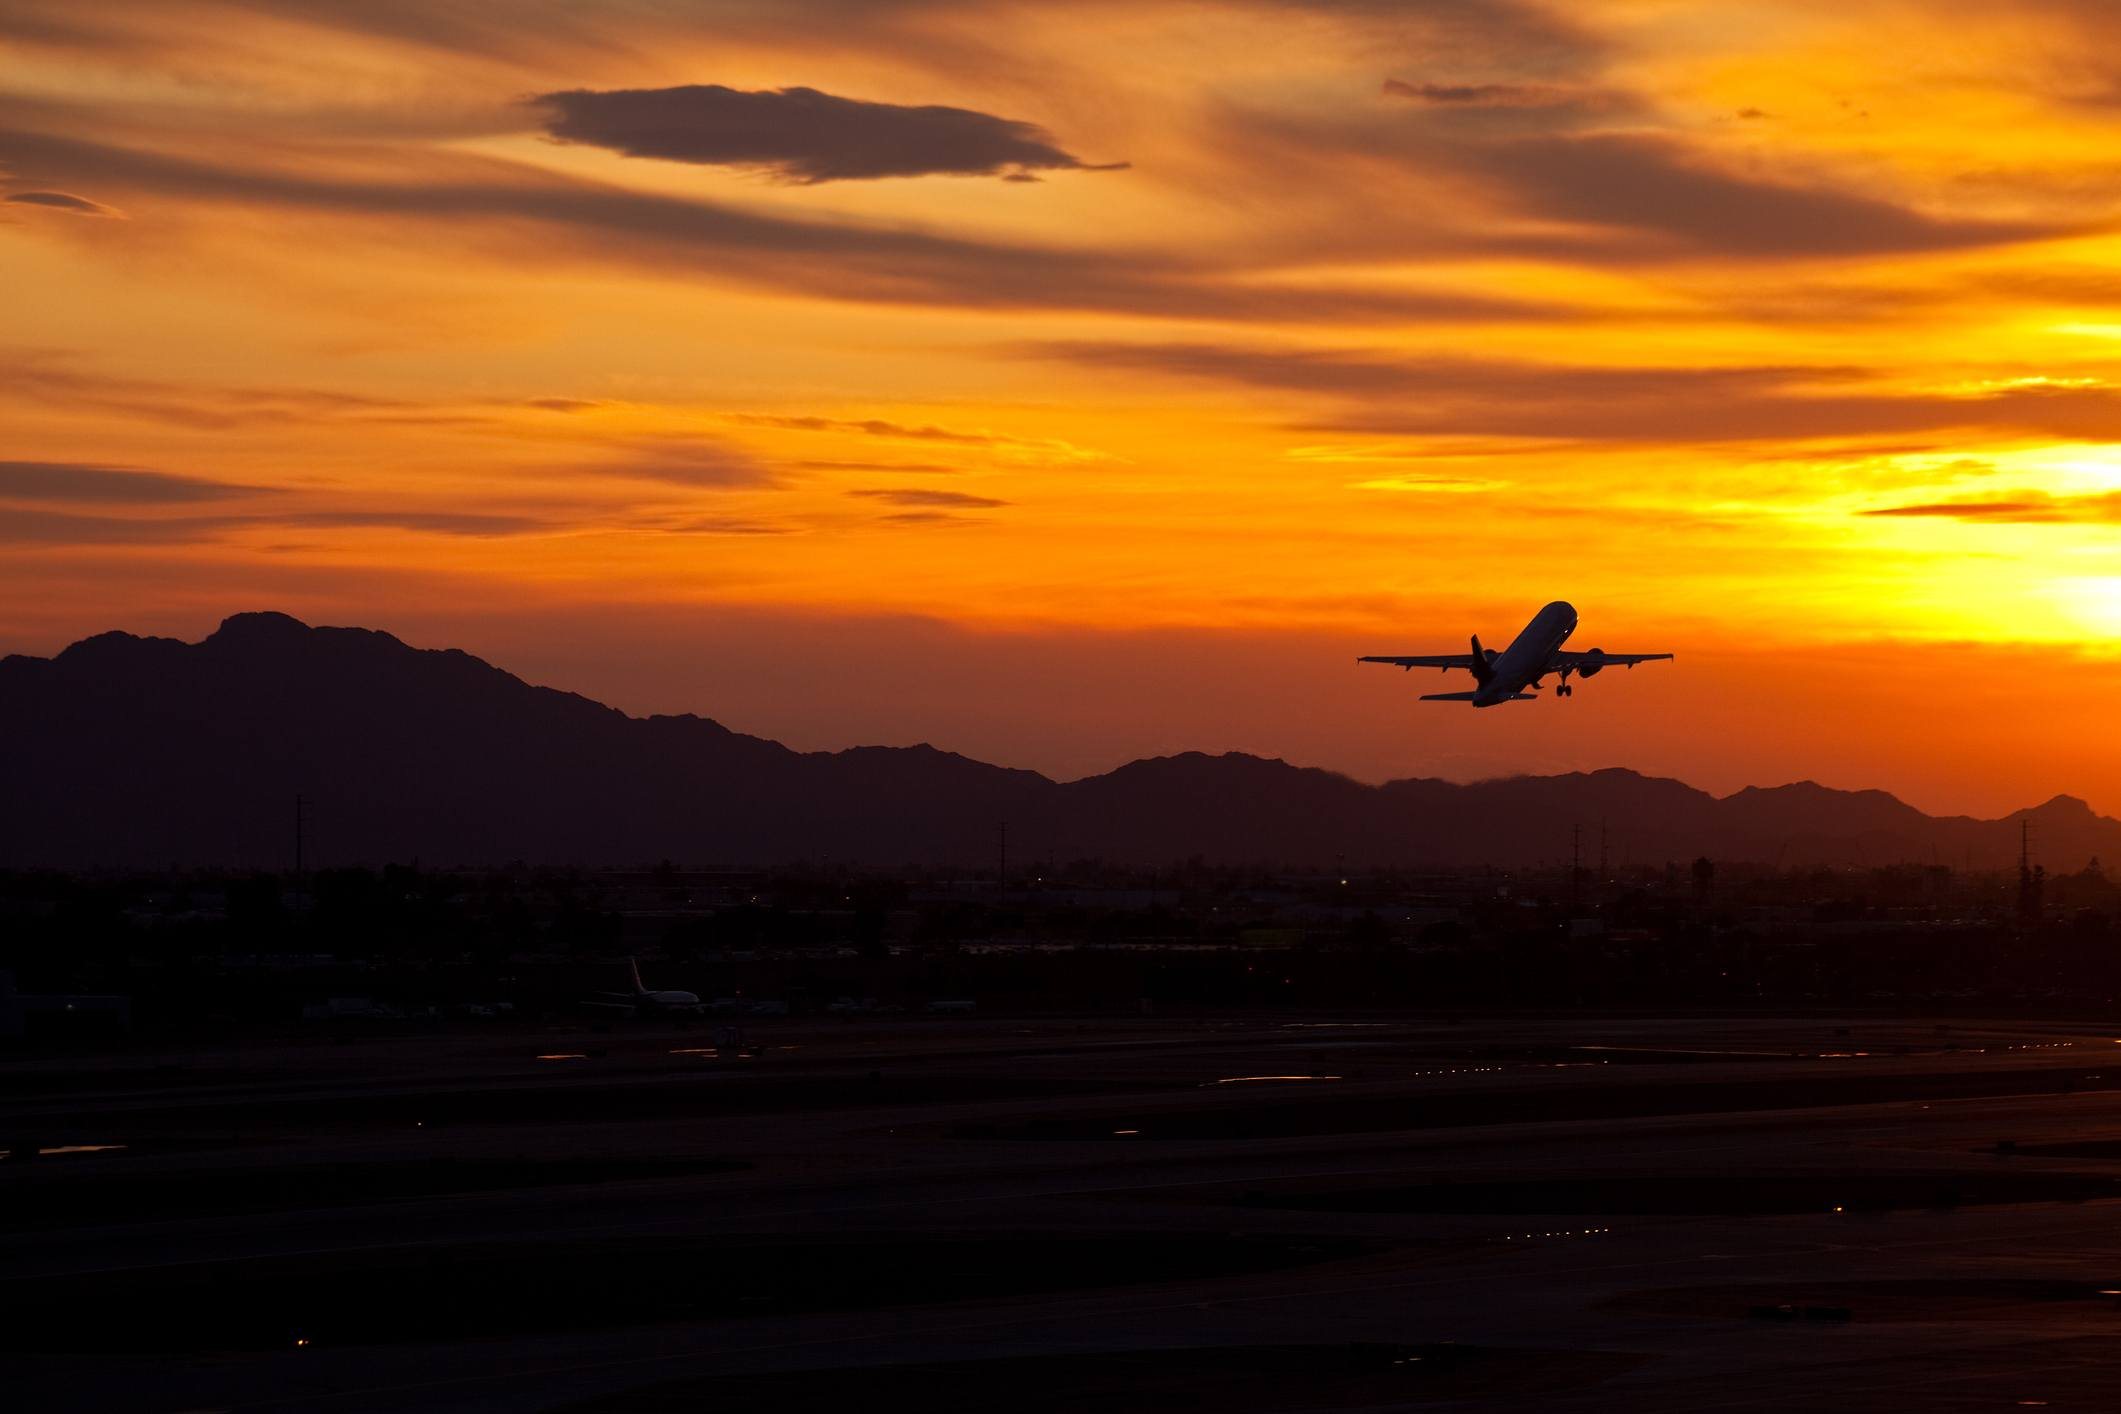 Airplane in the sunset